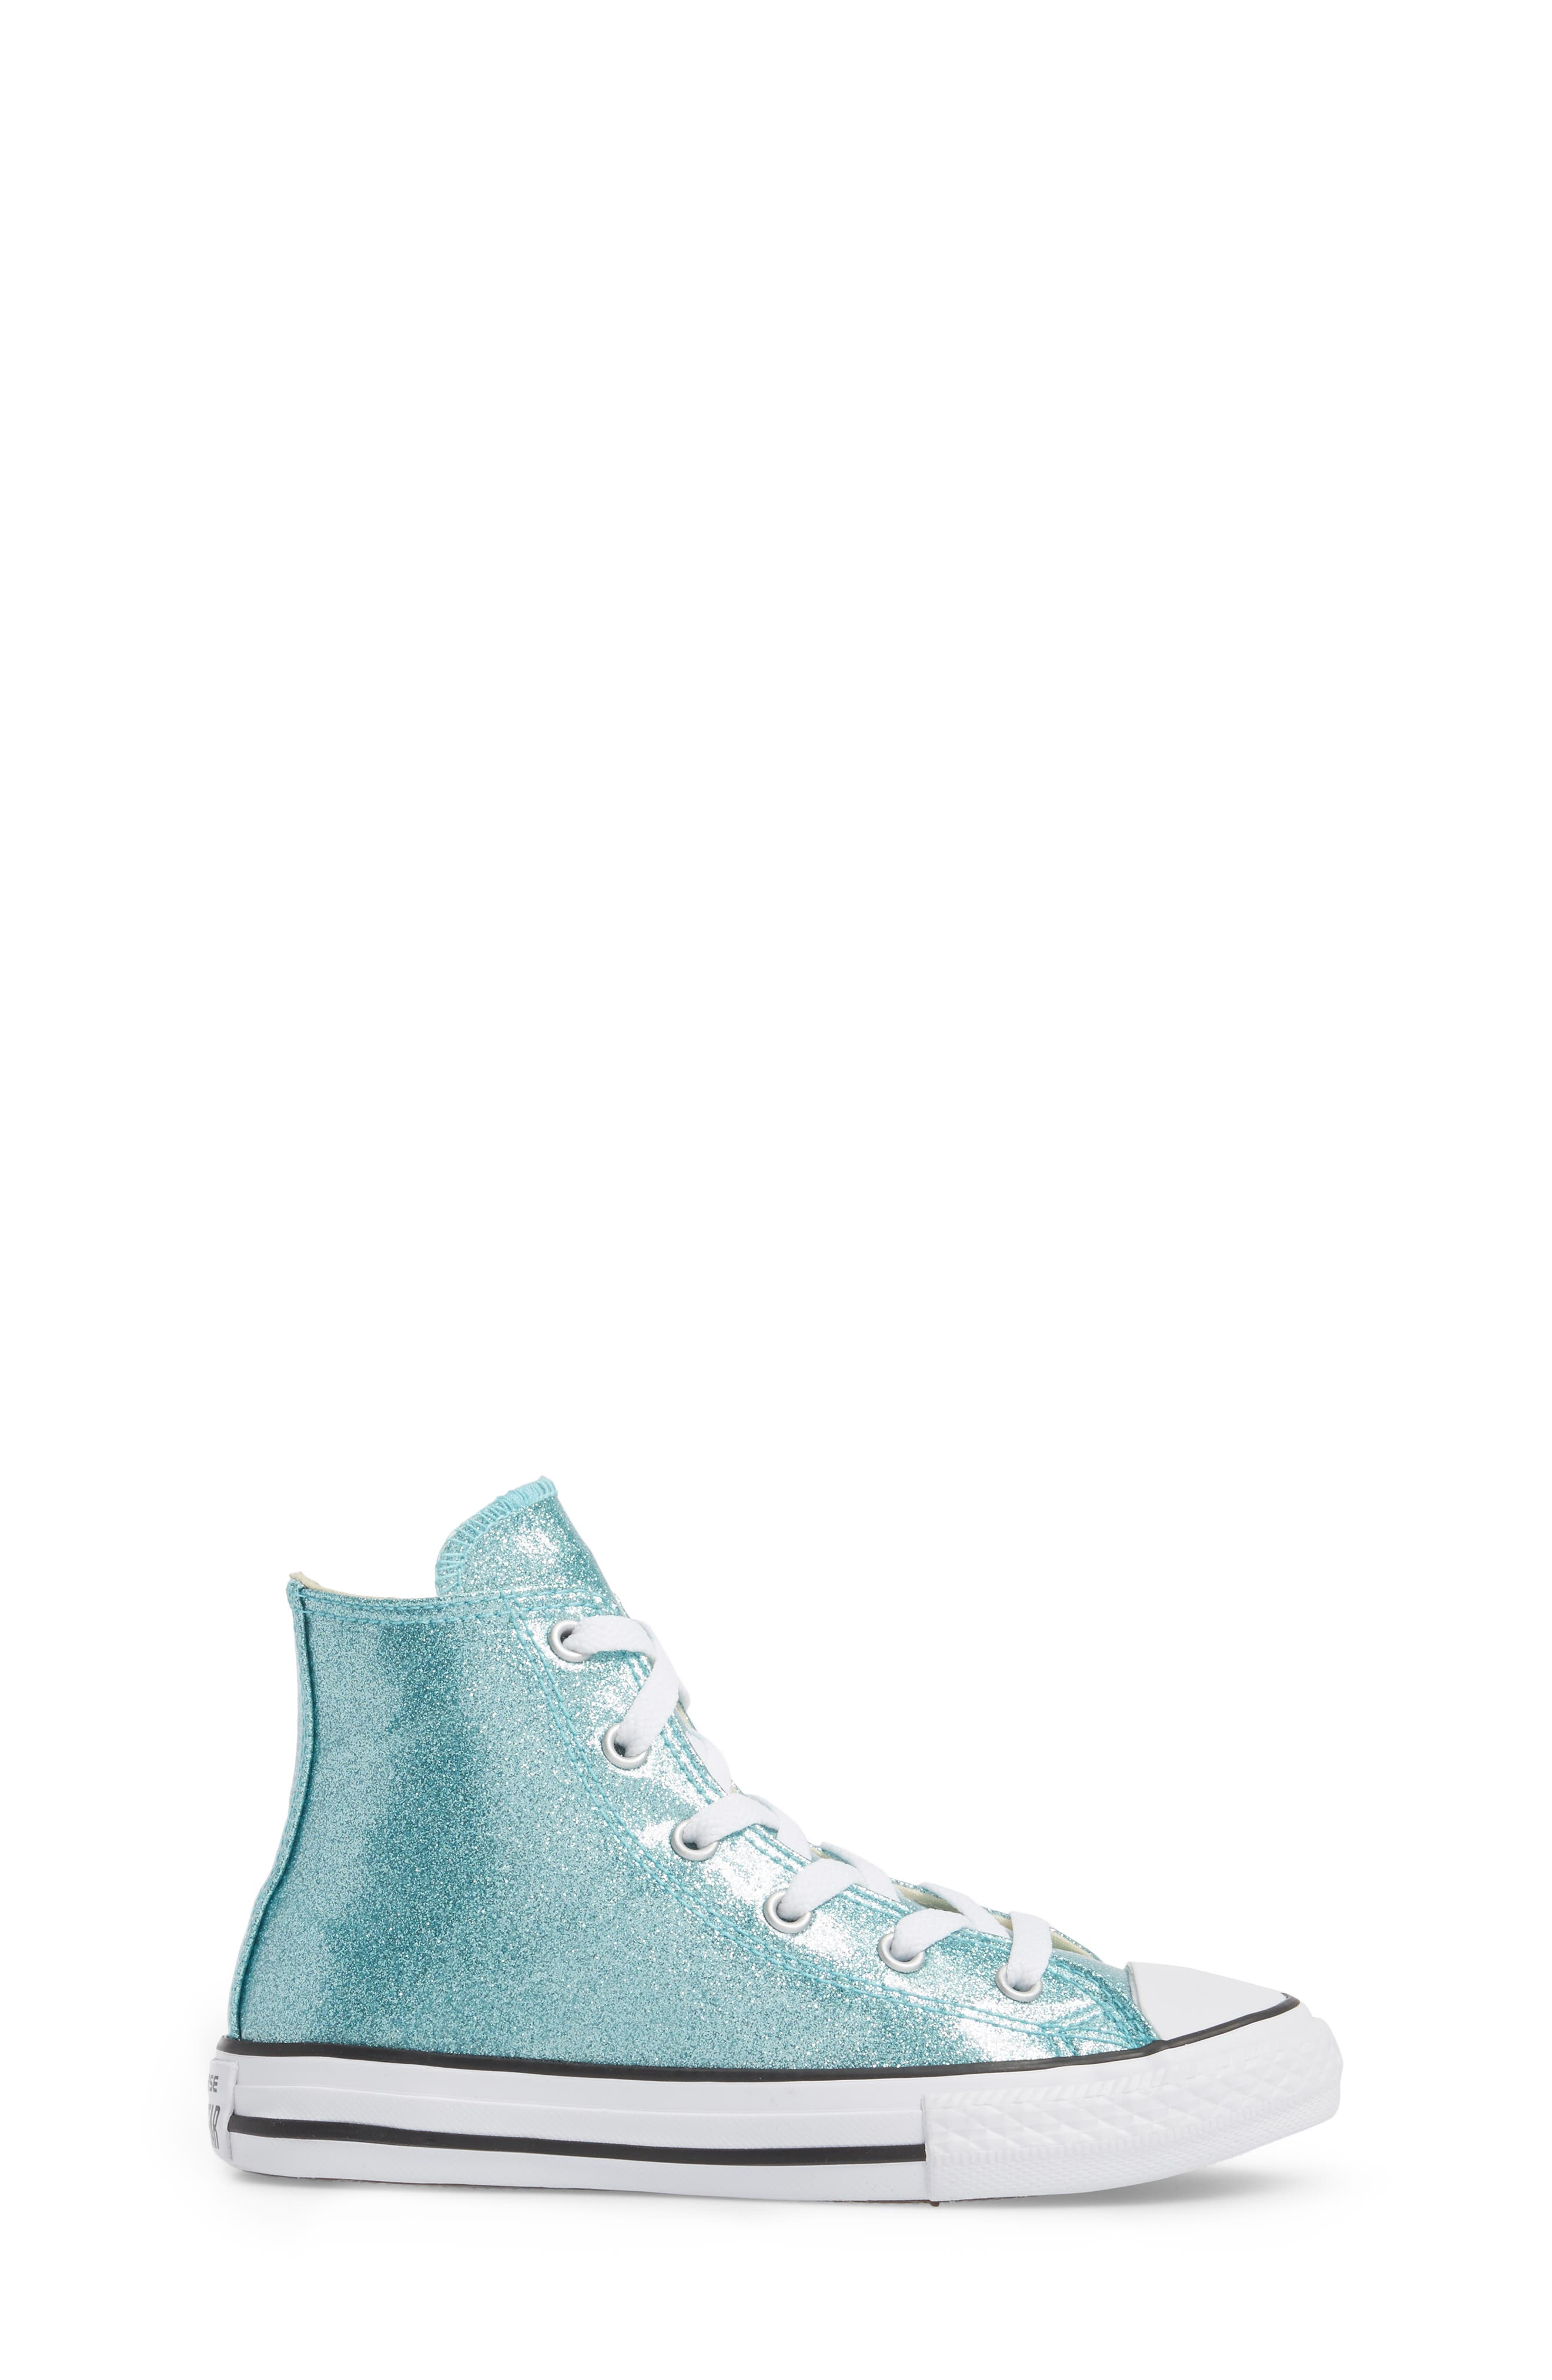 All Star<sup>®</sup> Glitter High Top Sneaker,                             Alternate thumbnail 3, color,                             400